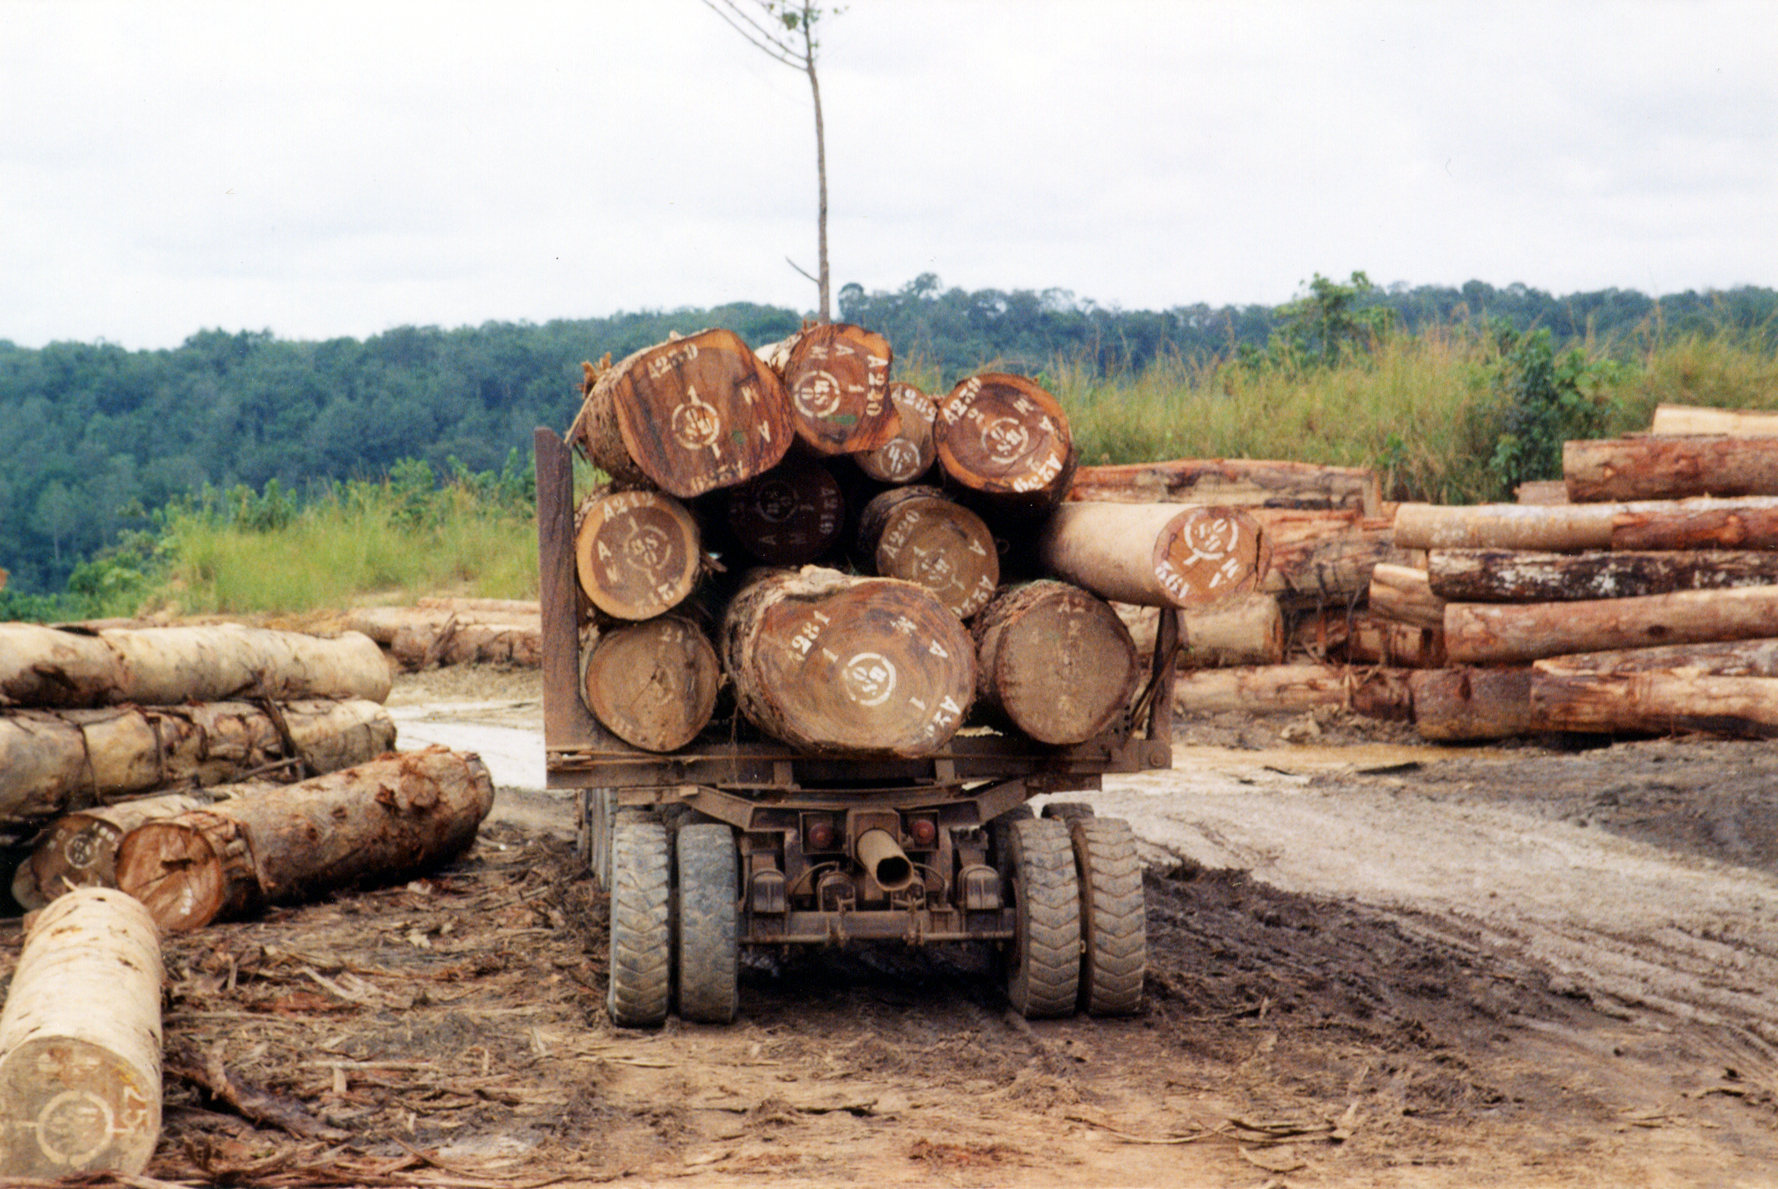 An industrial logging operation in the Congo Basin.